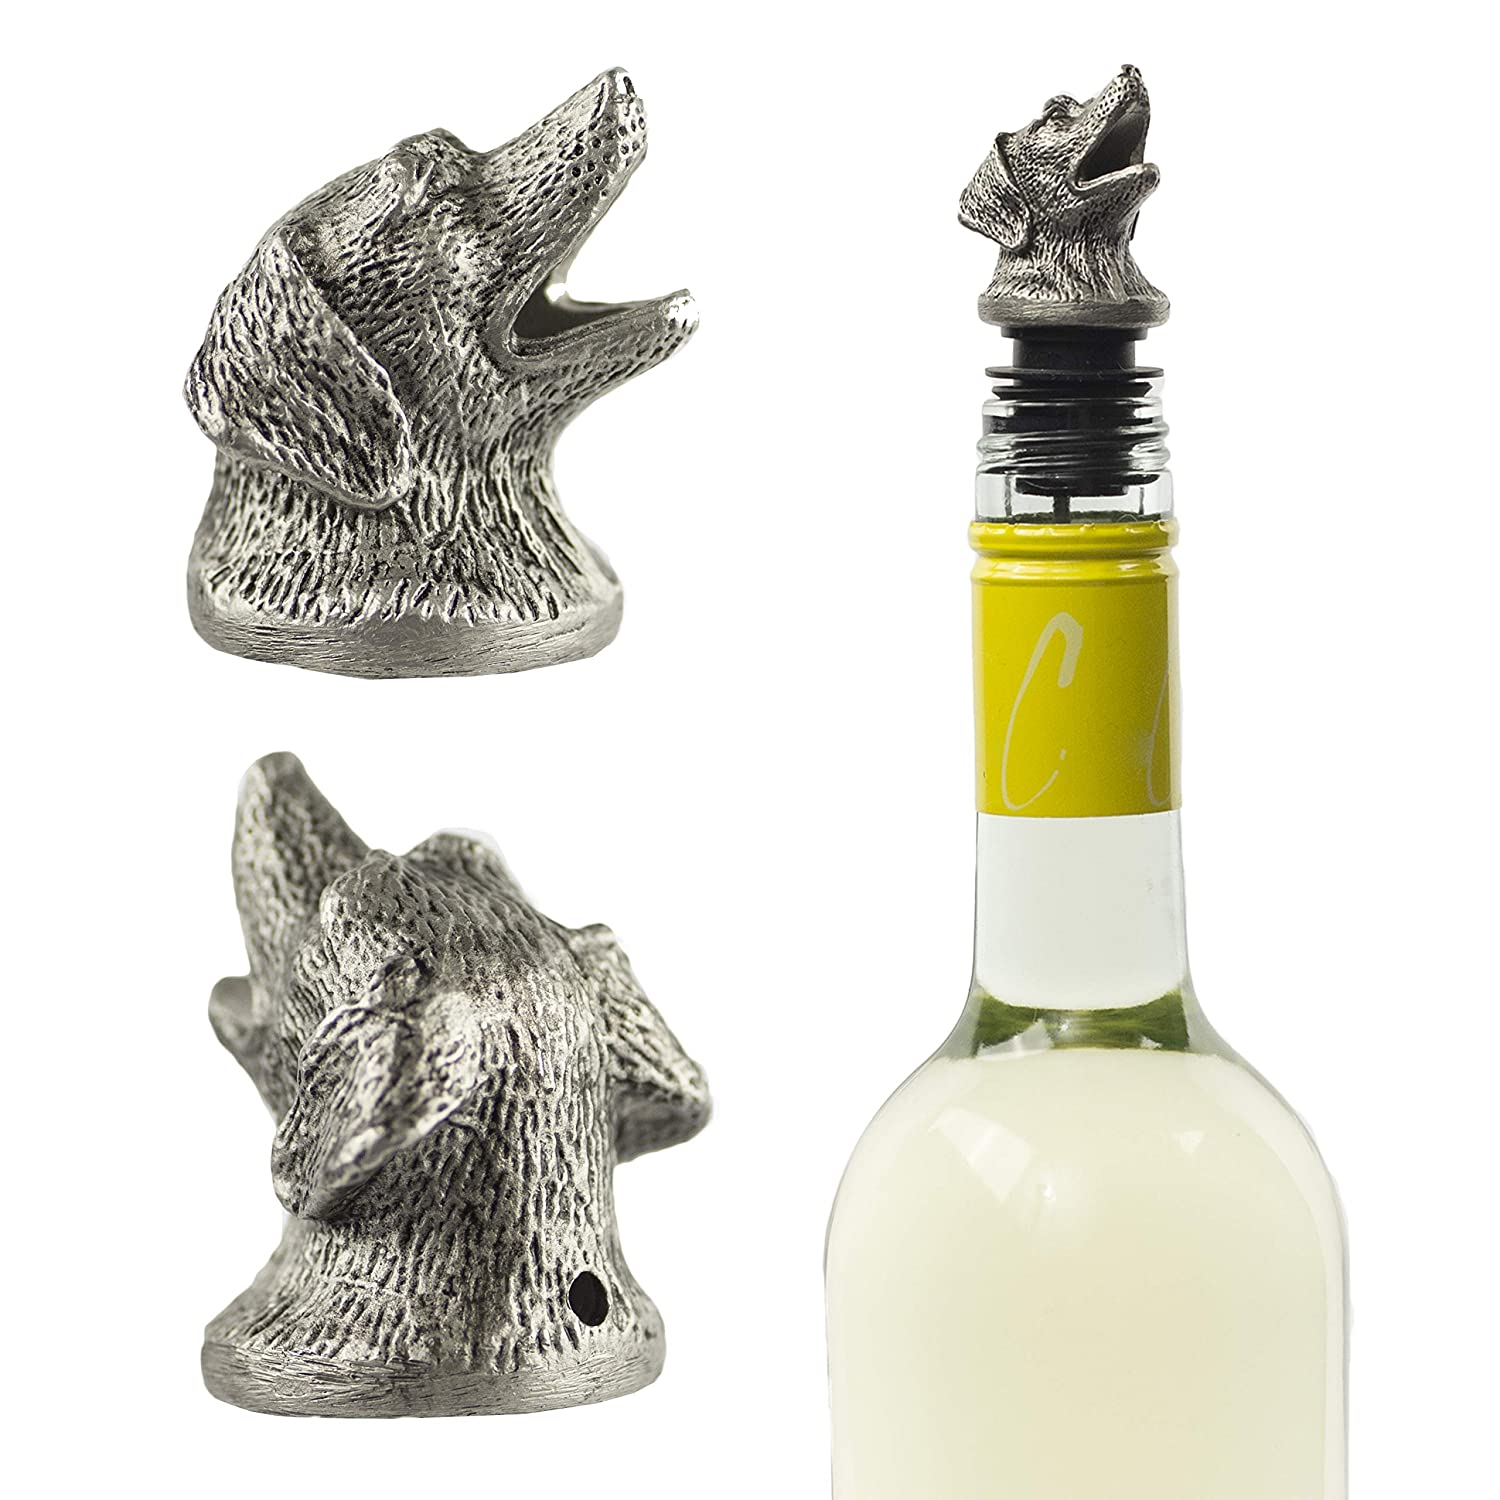 White and Rose Wine Stainless Steel Dog Wine Pourer Perfect Pour Spout for Red Aerator and Decanter Liquor and Olive Oil!